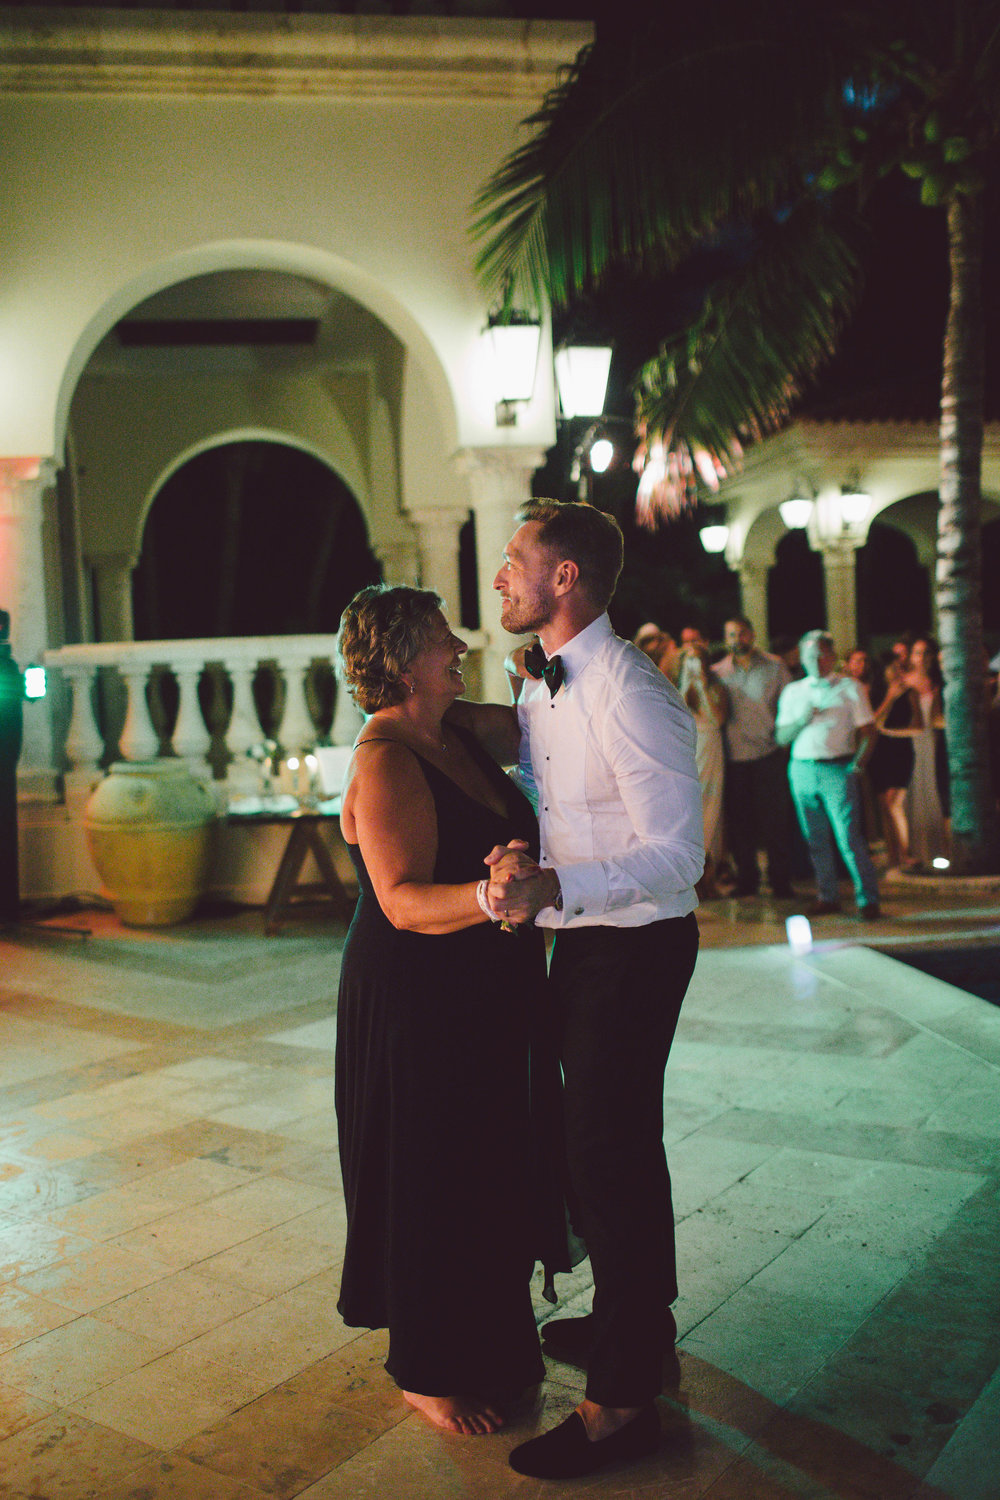 mexico_wedding_cancun_villa_la_joya_evangeline_lane_160.jpg